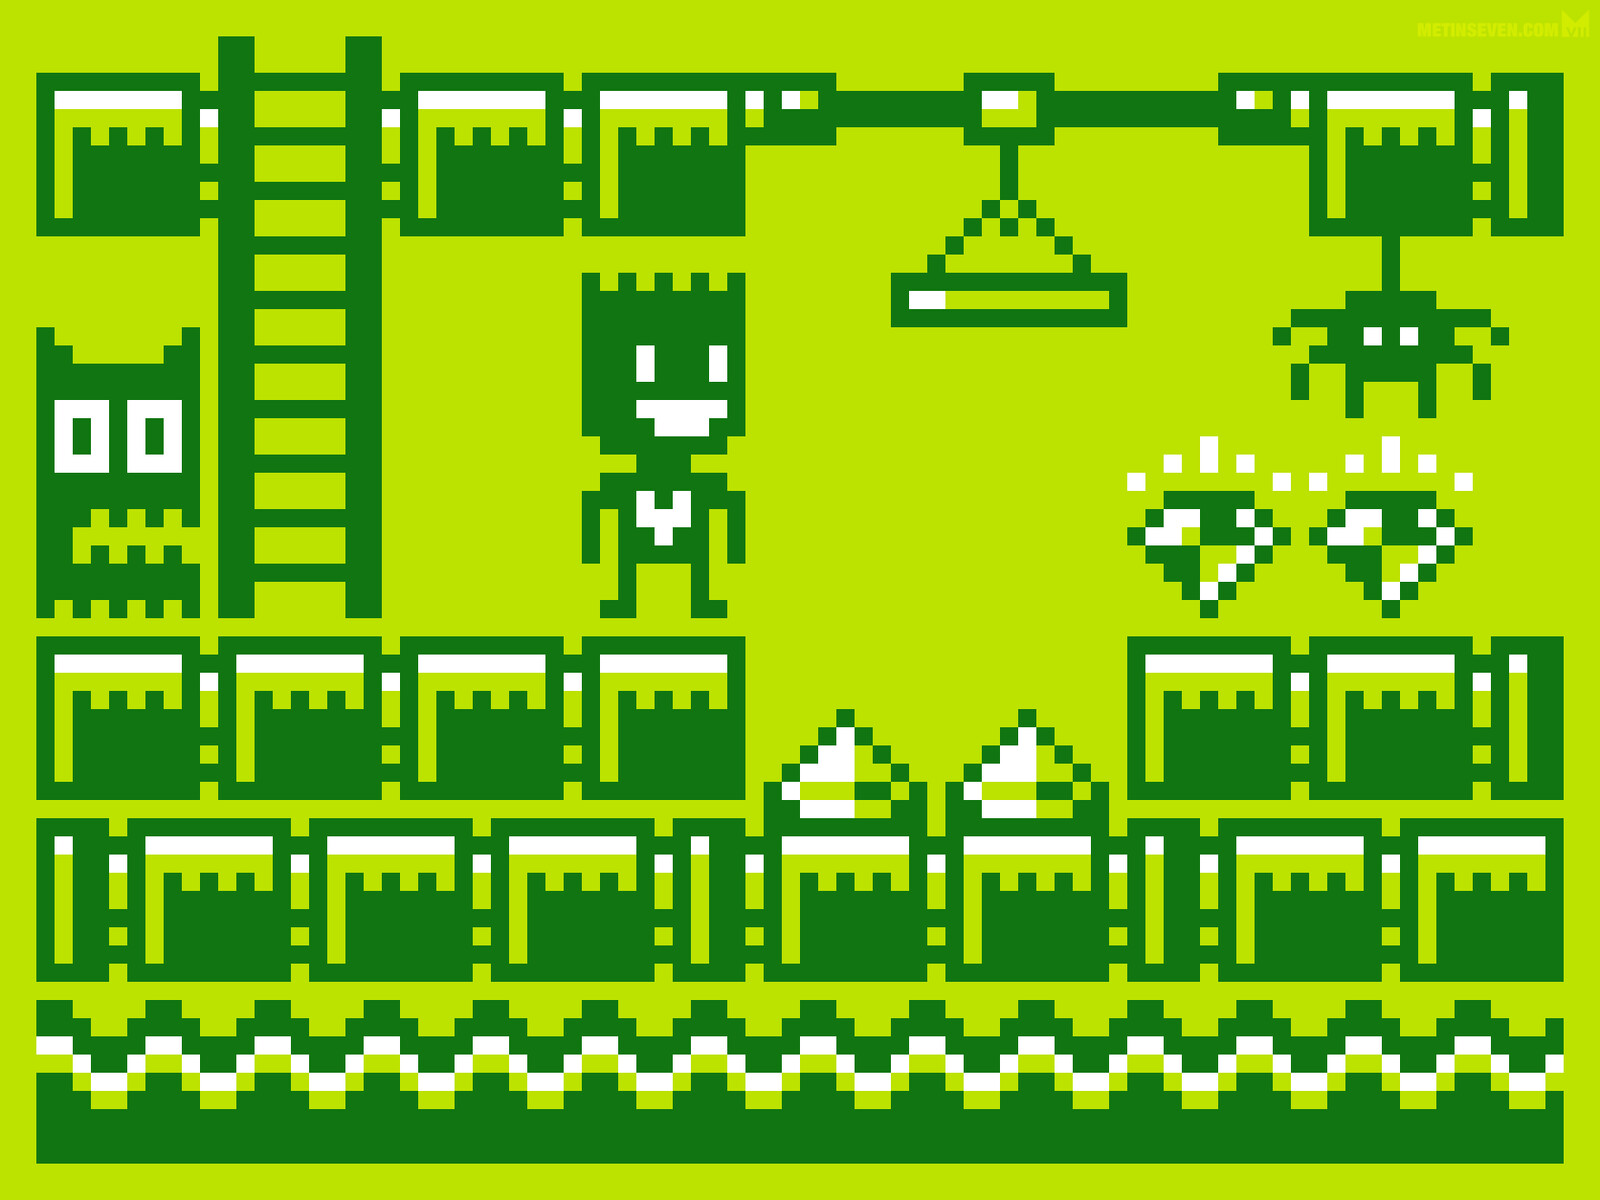 Gameboy-style low-resolution pixel art